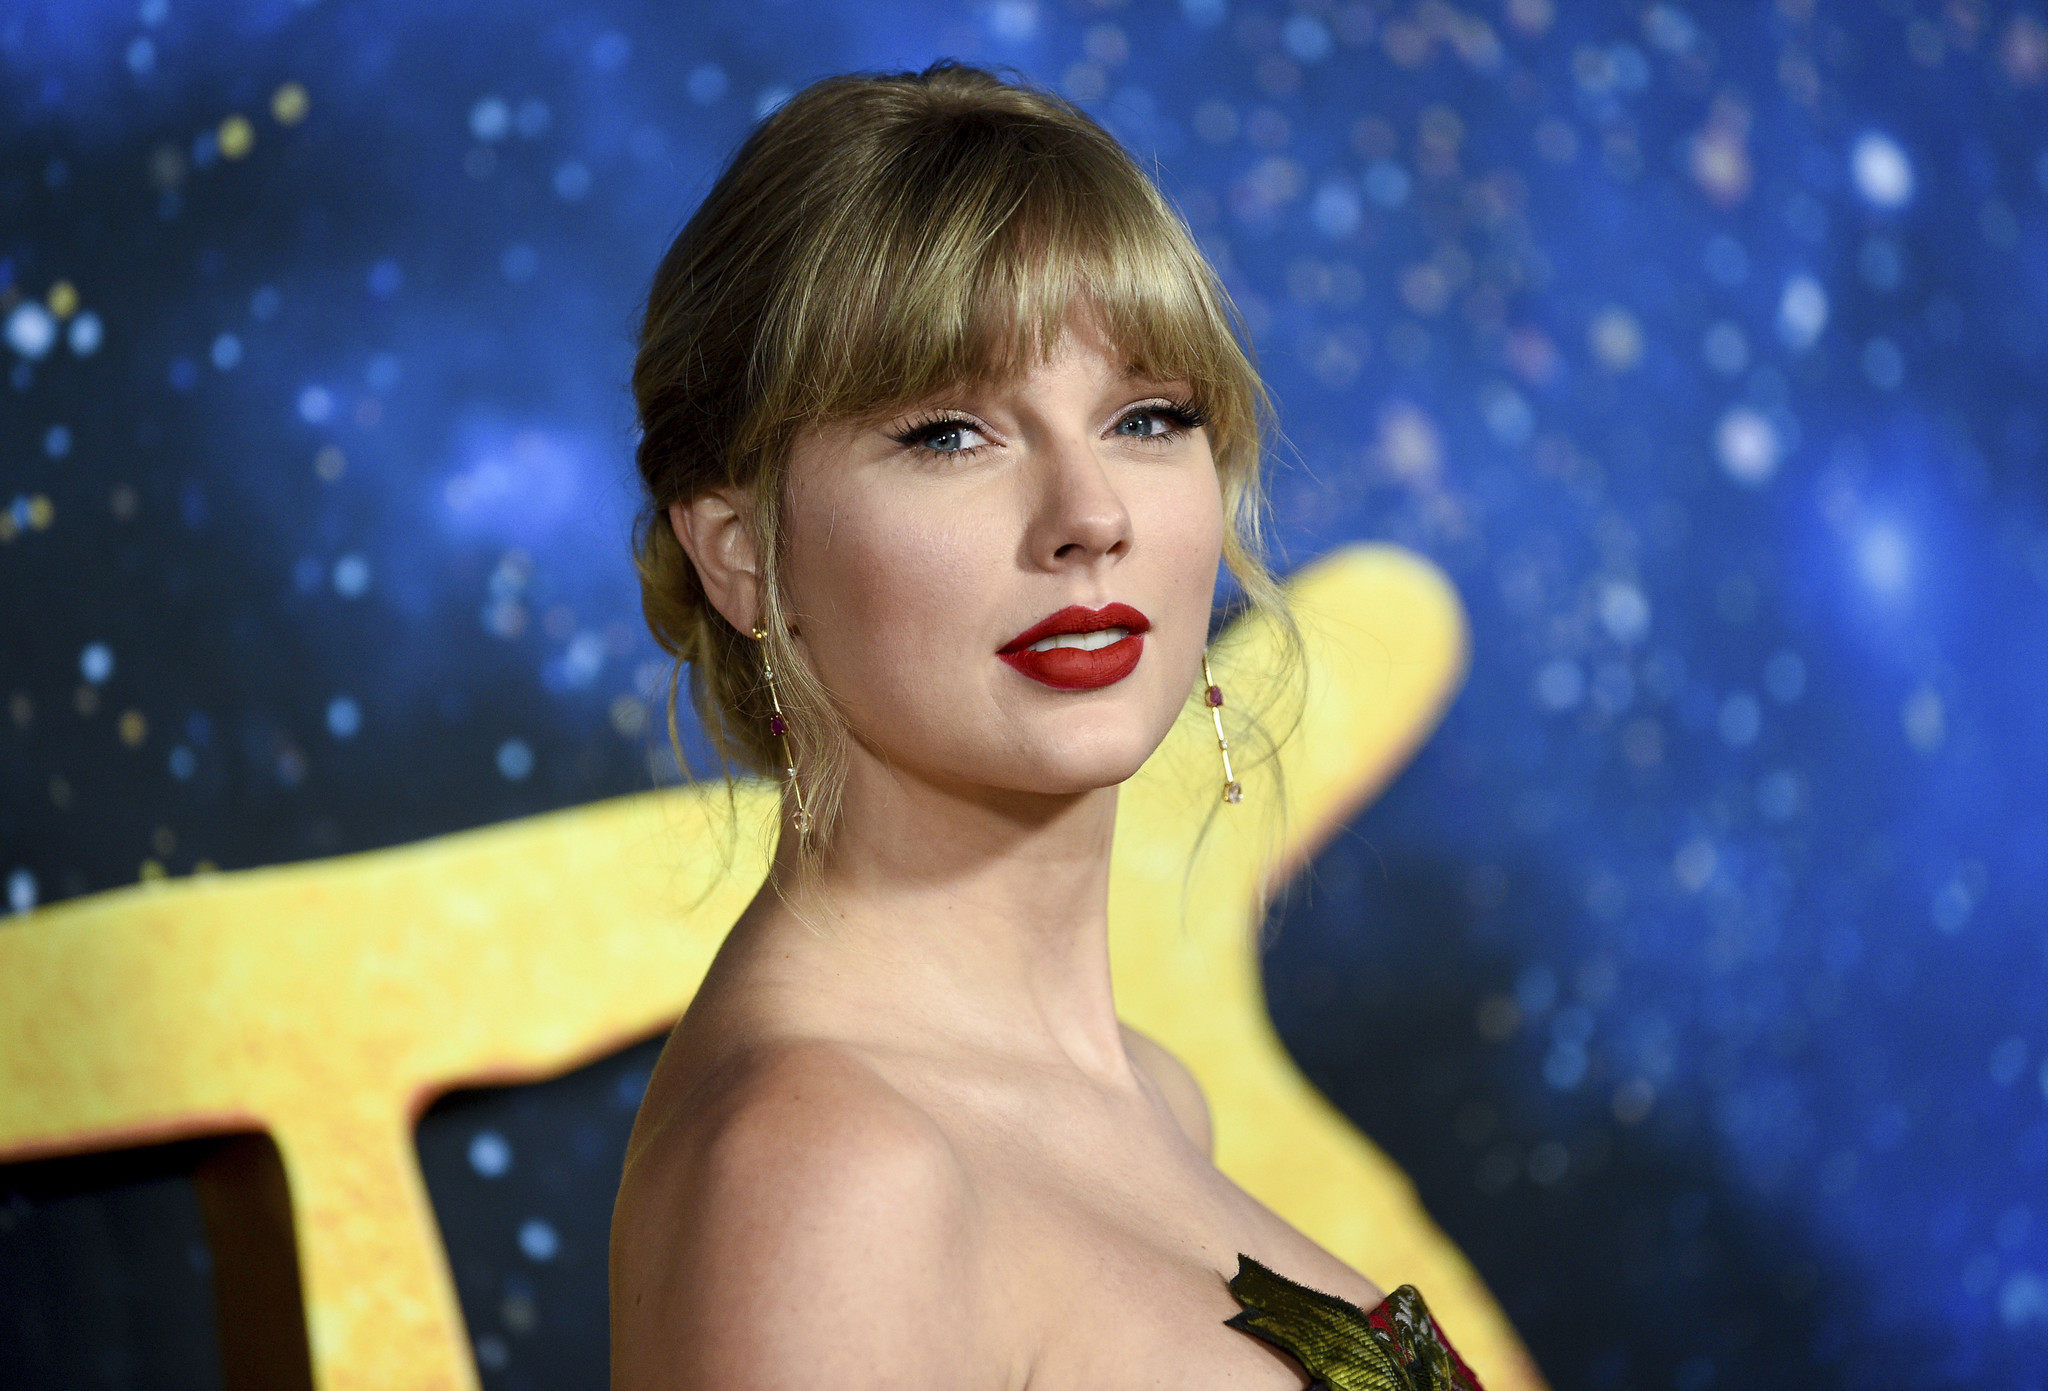 Taylor Swift to be honored with GLAAD's Vanguard Award